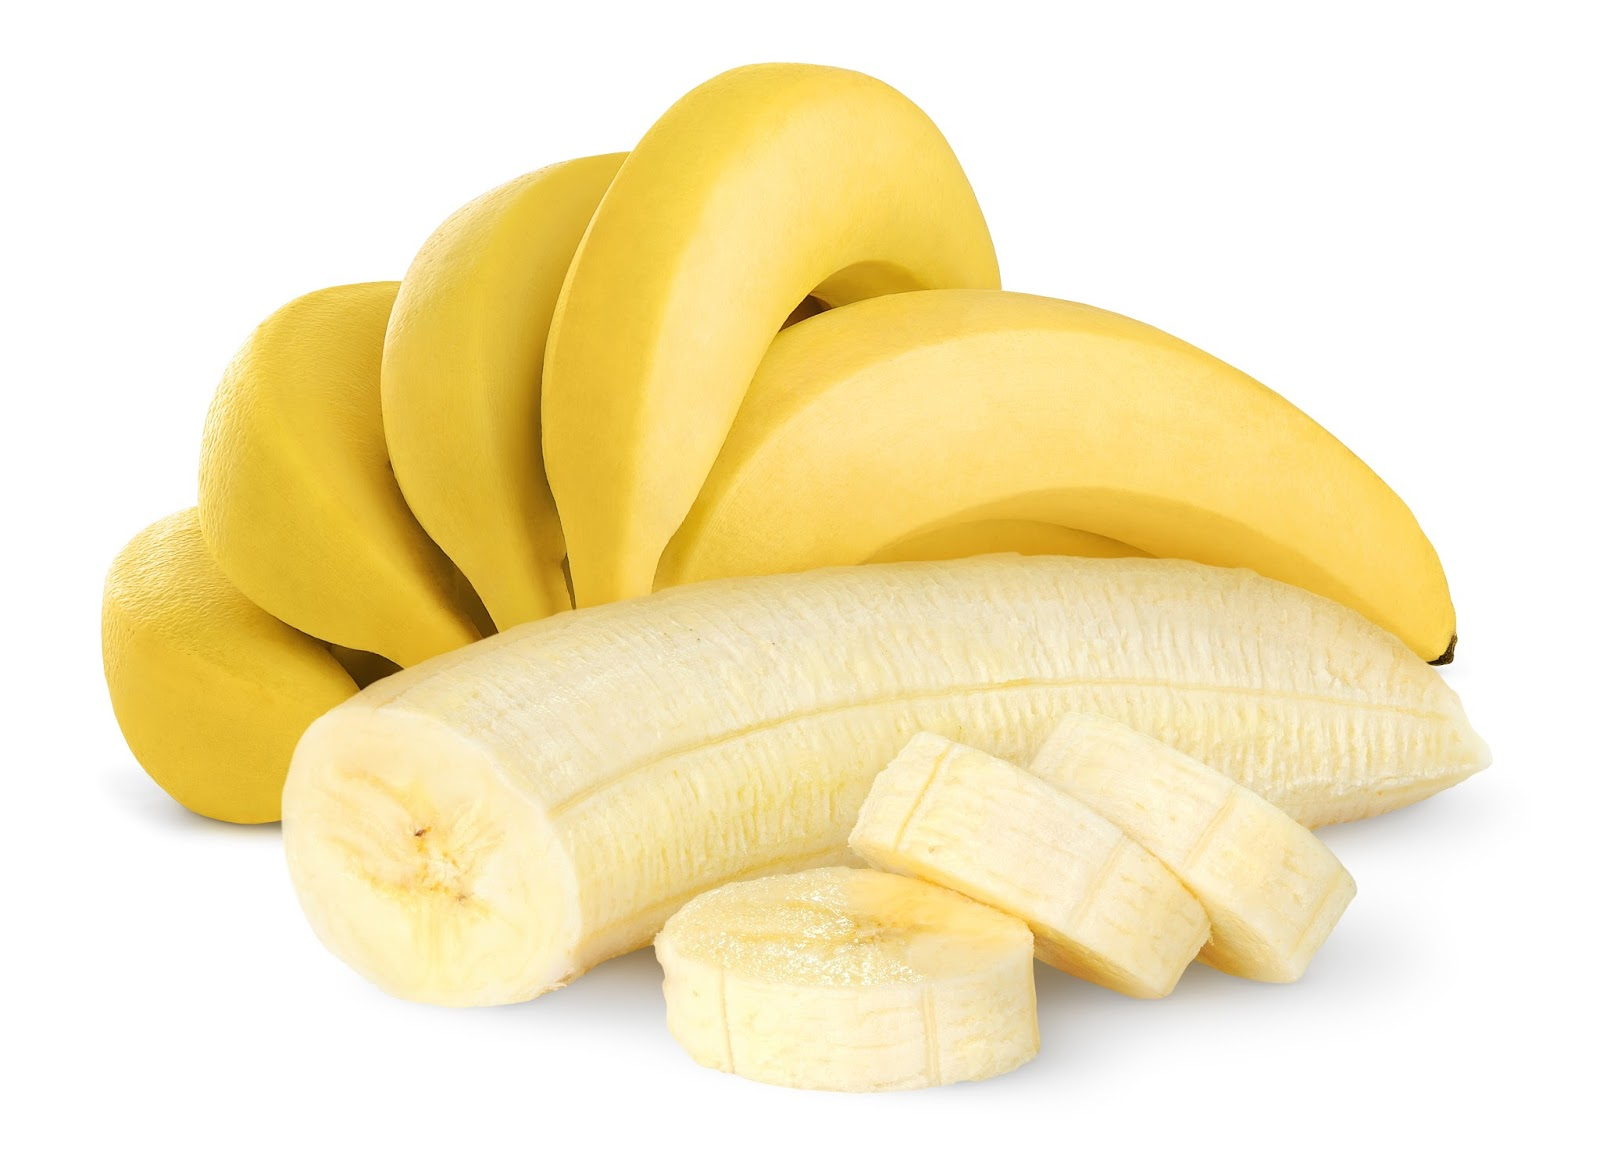 the health benefits of bananas Furthermore, bananas contain a decent amount of magnesium, which is also important for heart health (26, 27) bottom line: bananas are a good dietary source of potassium and magnesium, two nutrients that are essential for heart health.